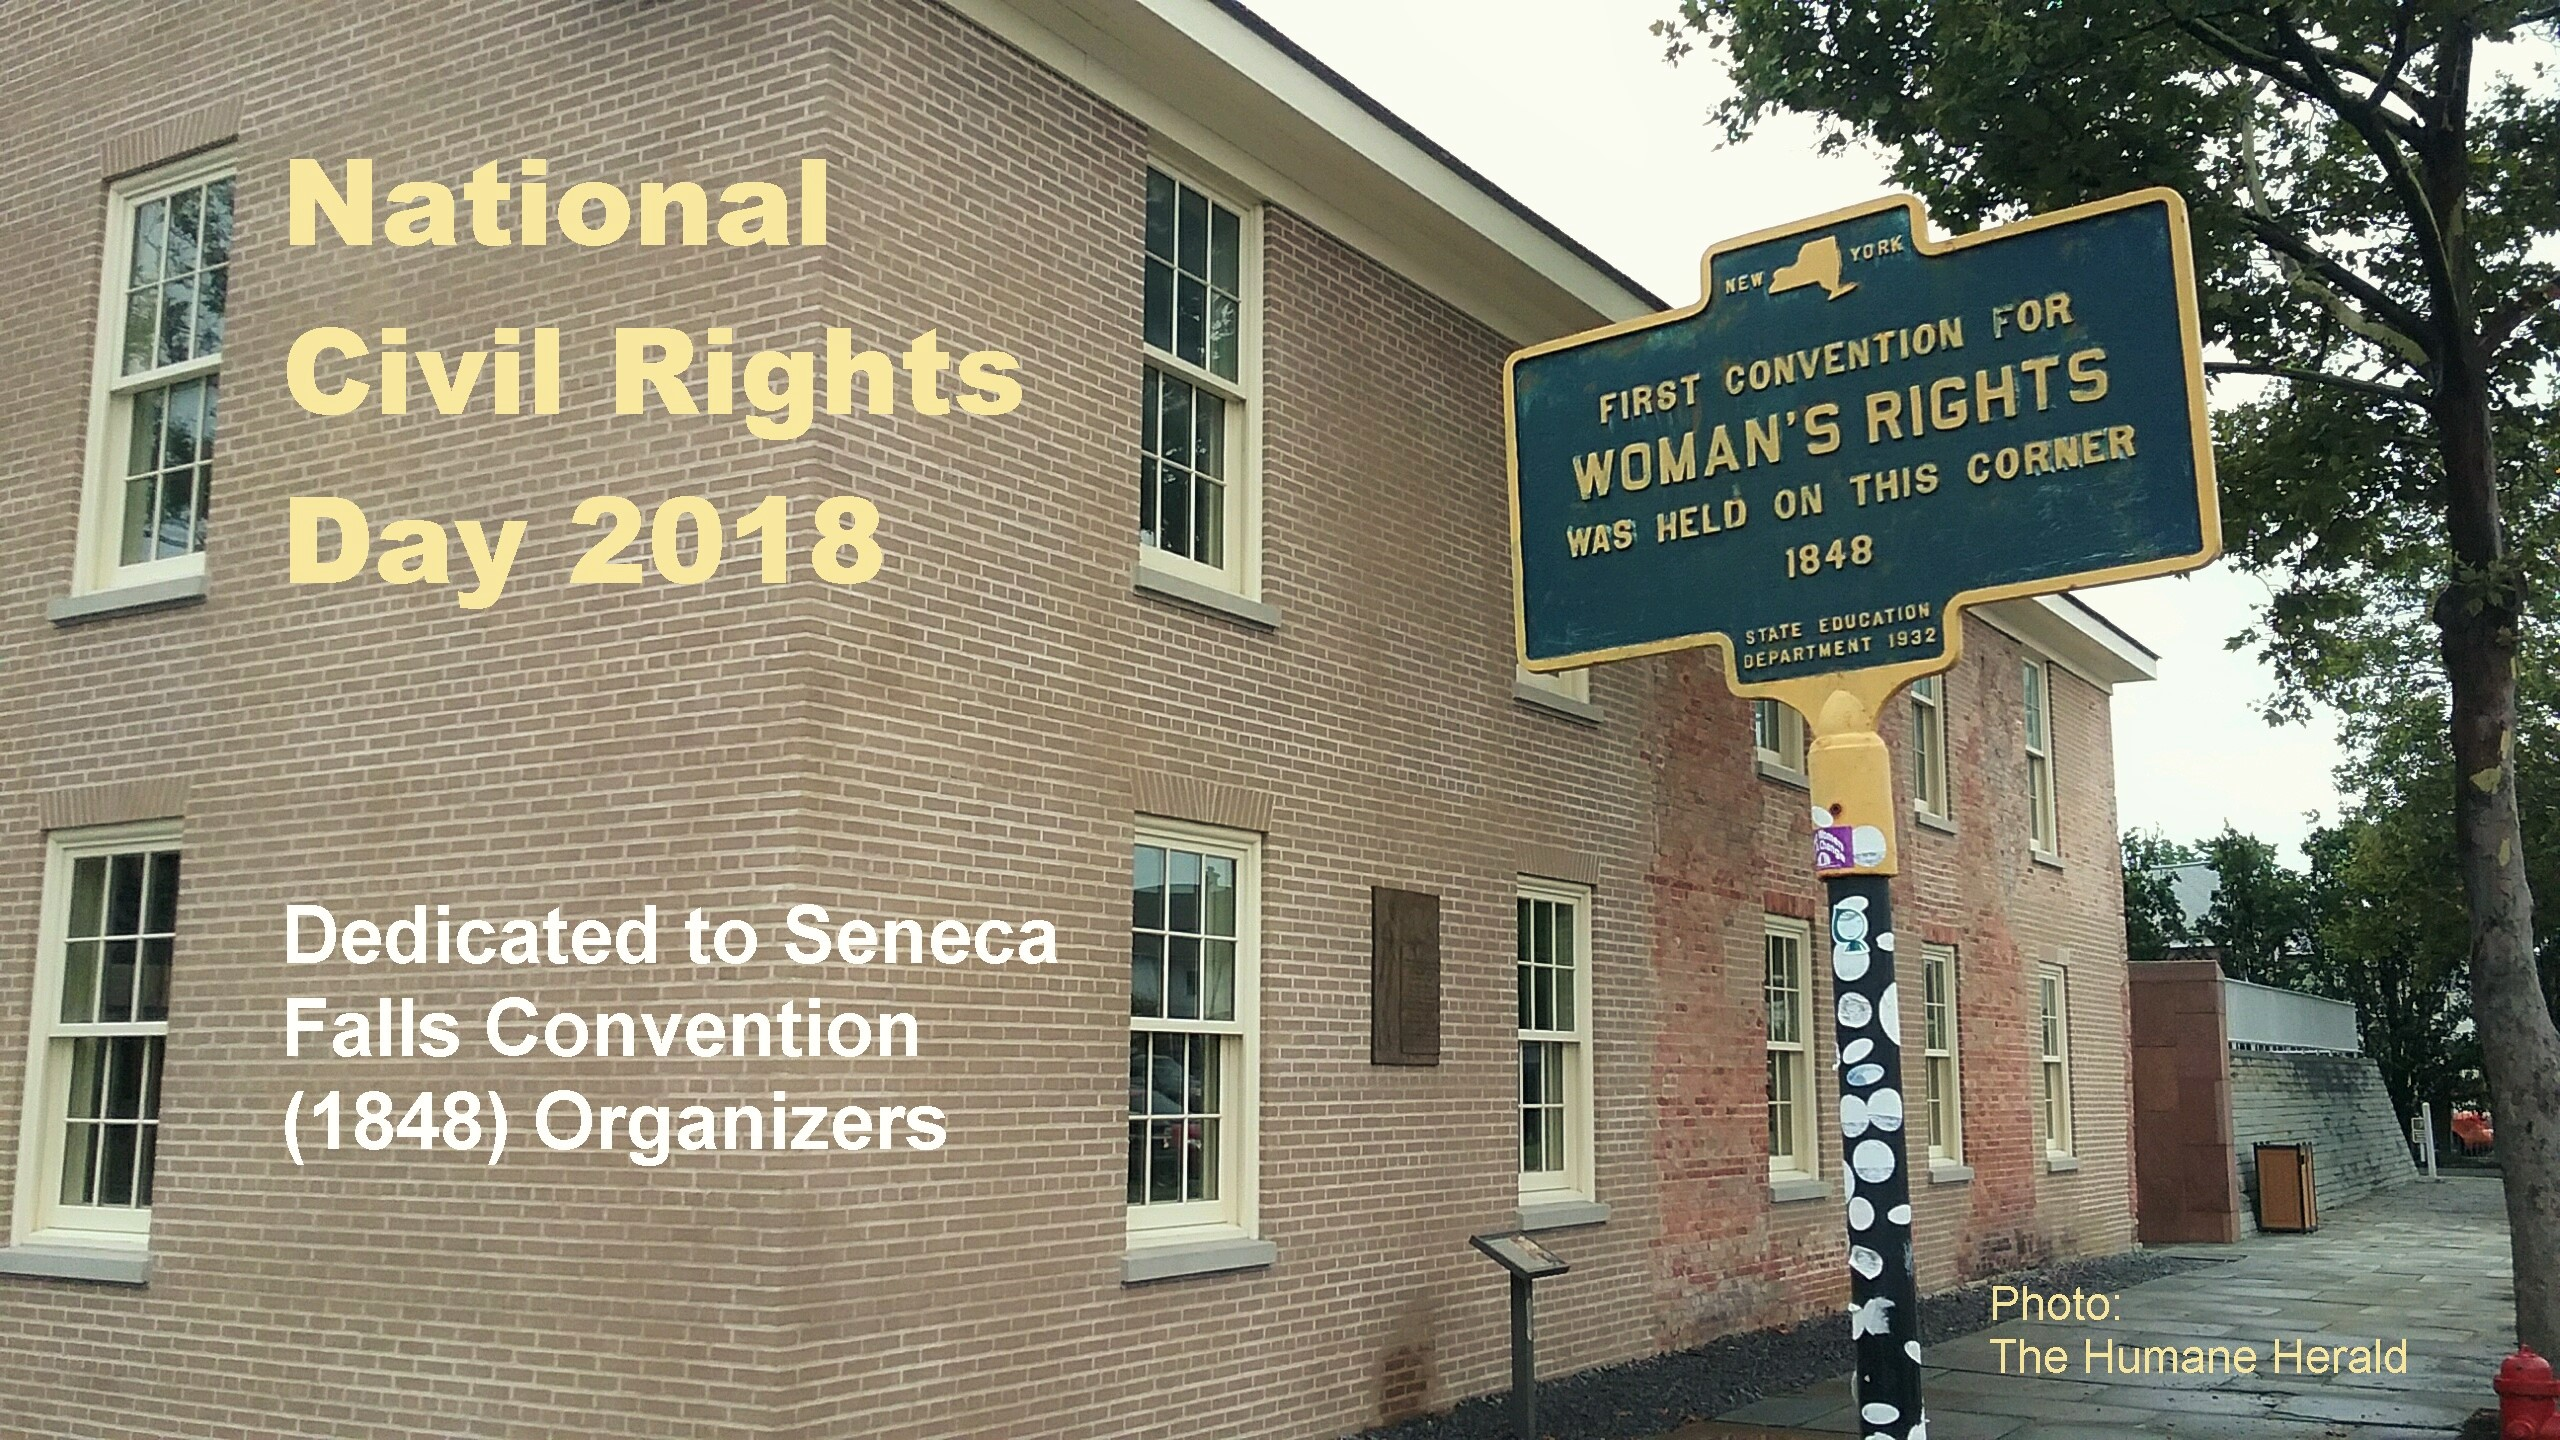 National Civil Rights Day 2018 | Seneca Falls Convention (1848)